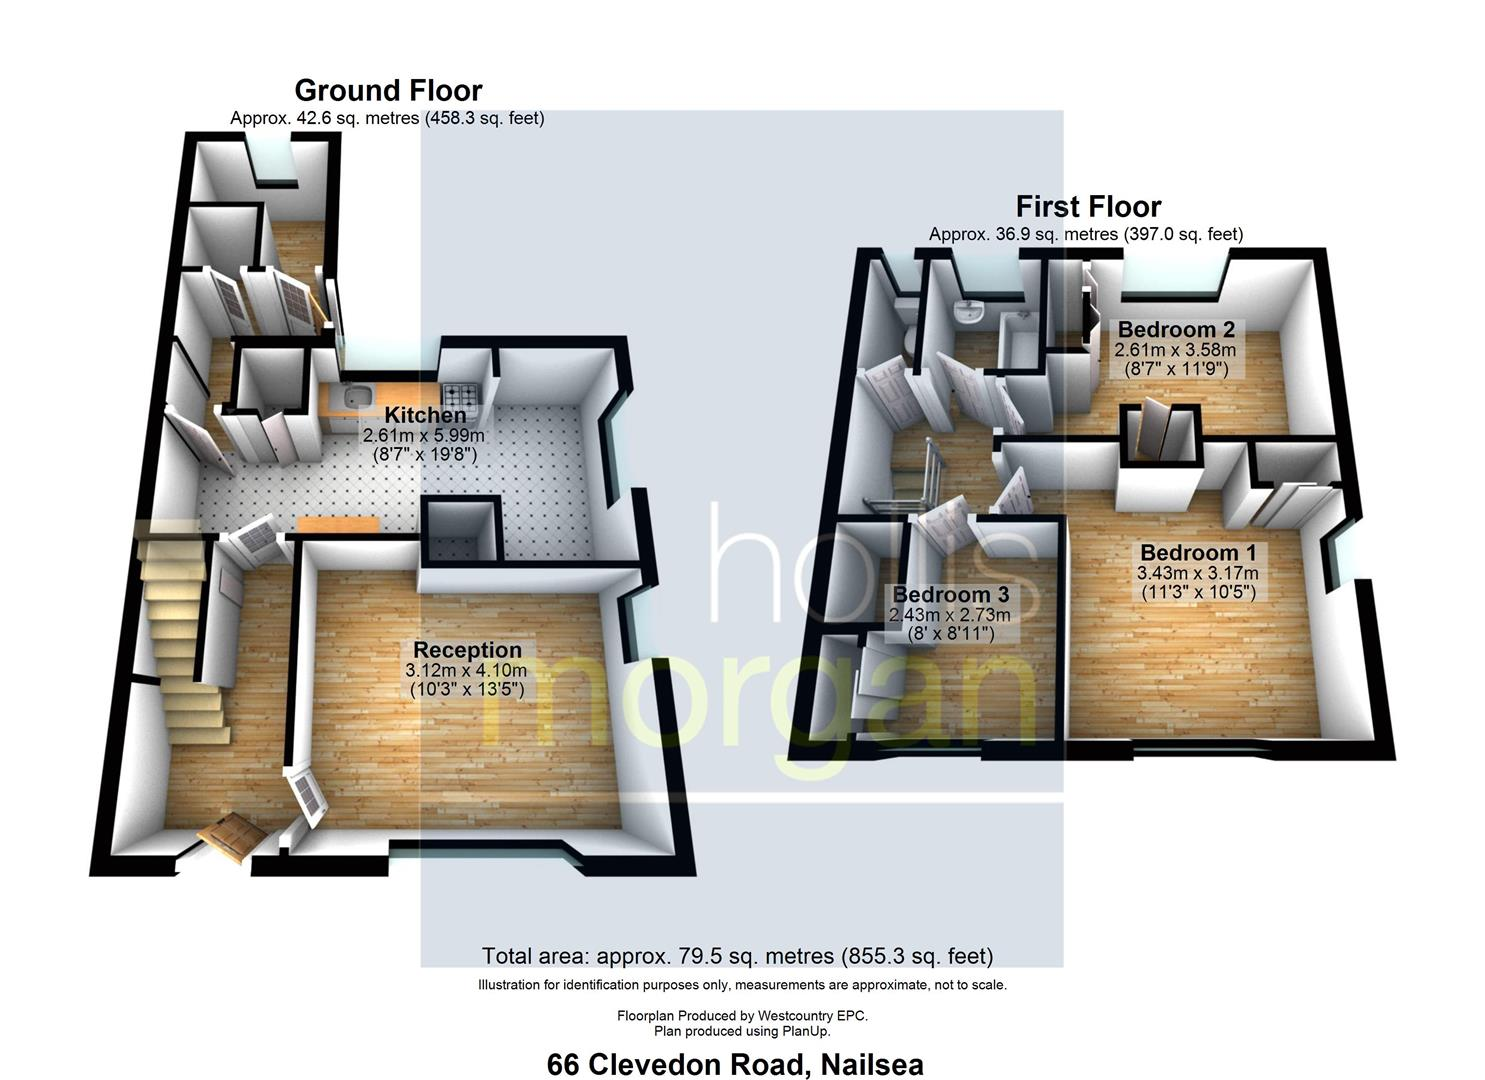 Floorplans For HOUSE + PLOT COMBO - NAILSEA